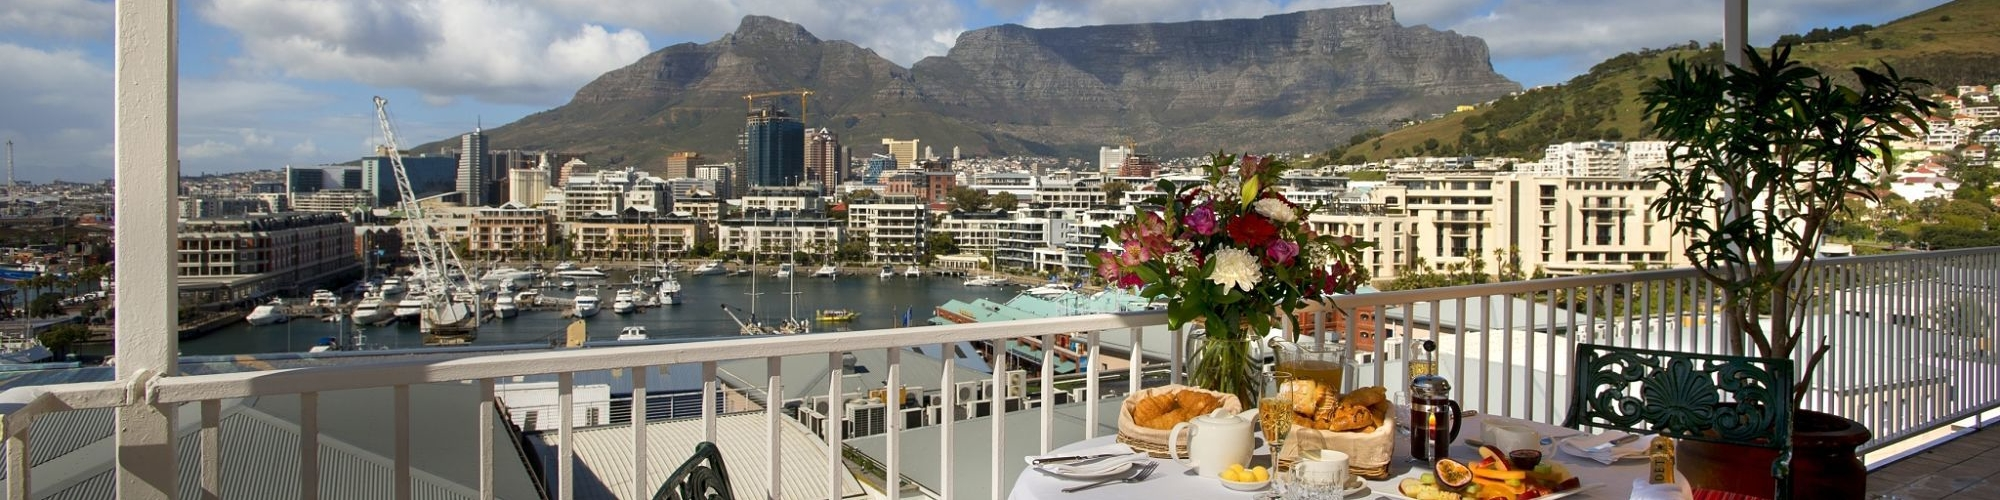 Commodore Hotel, Table Mountain View